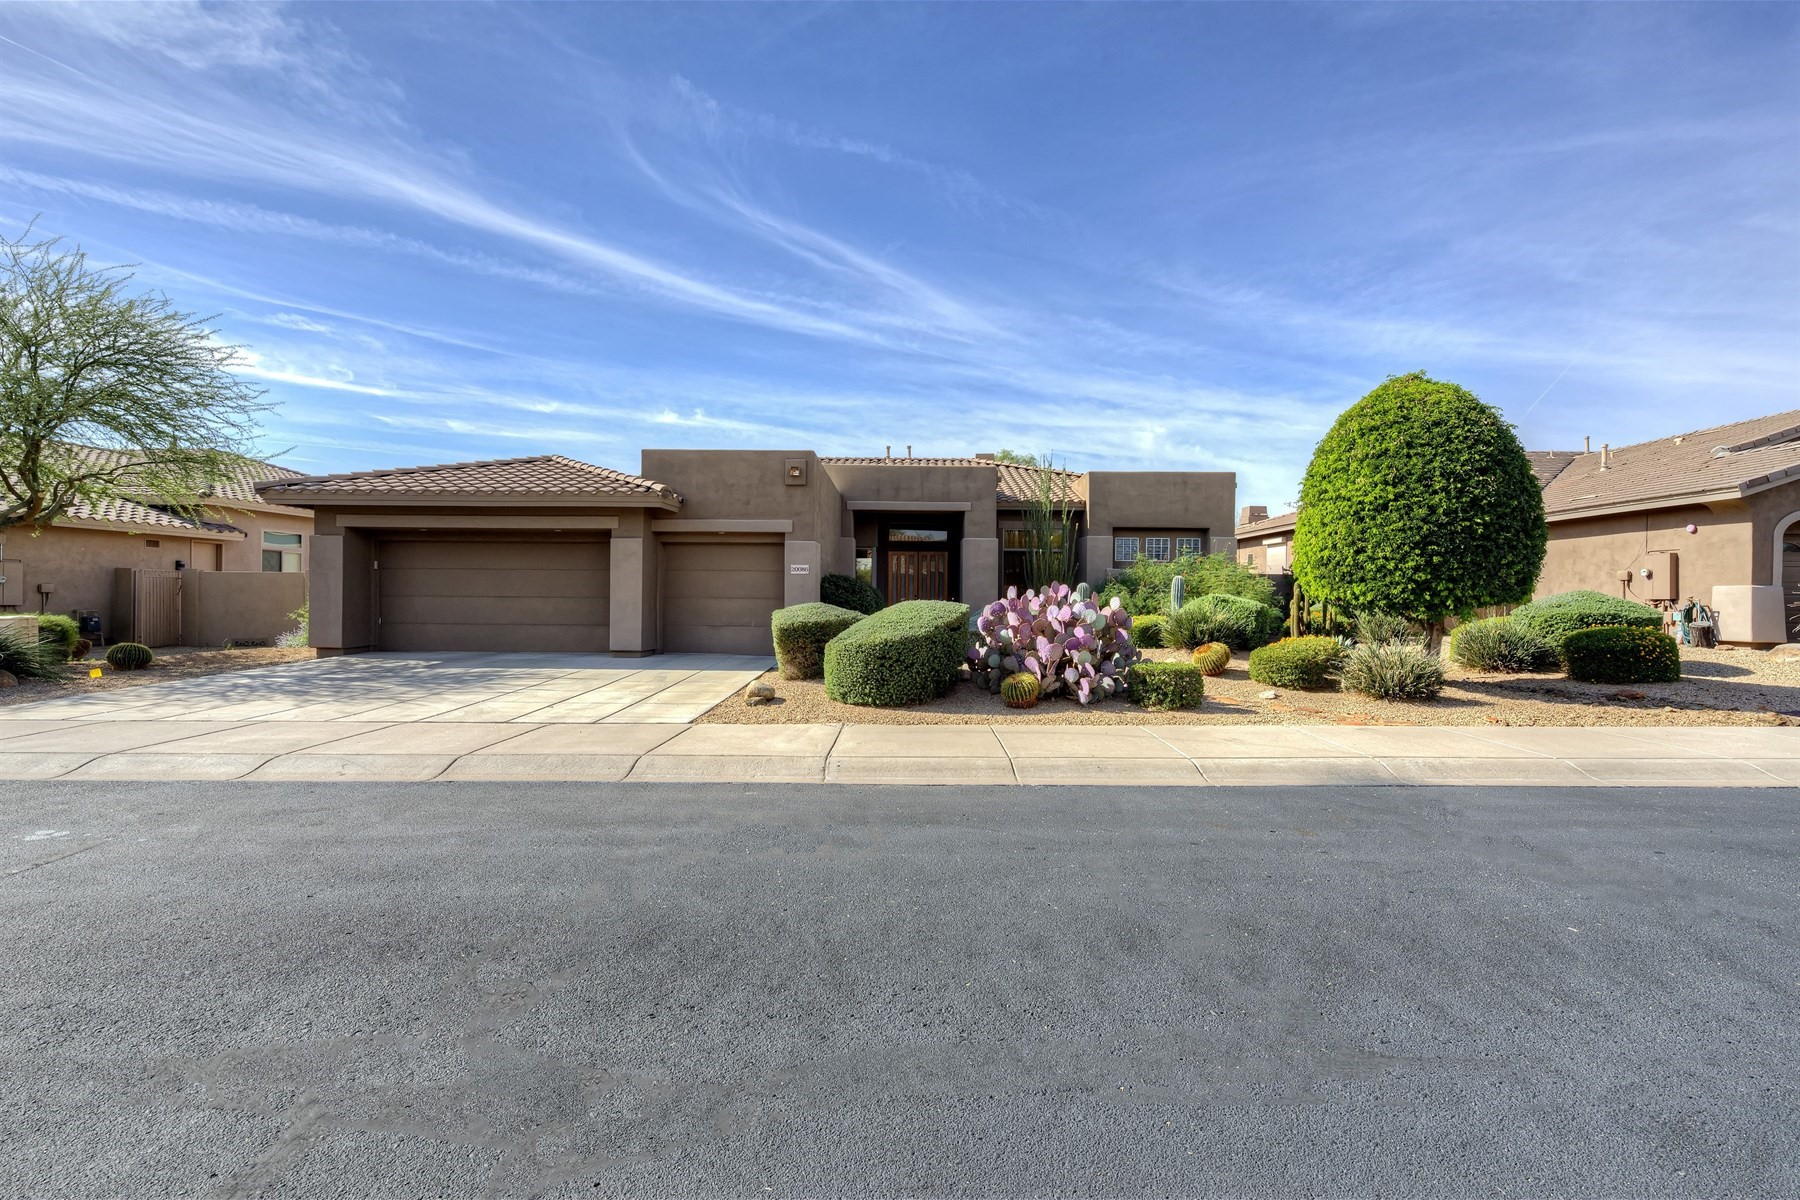 Single Family Home for Sale at Fabulous Scottsdale home in Grayhawk 20086 N 84th Way Scottsdale, Arizona, 85255 United States